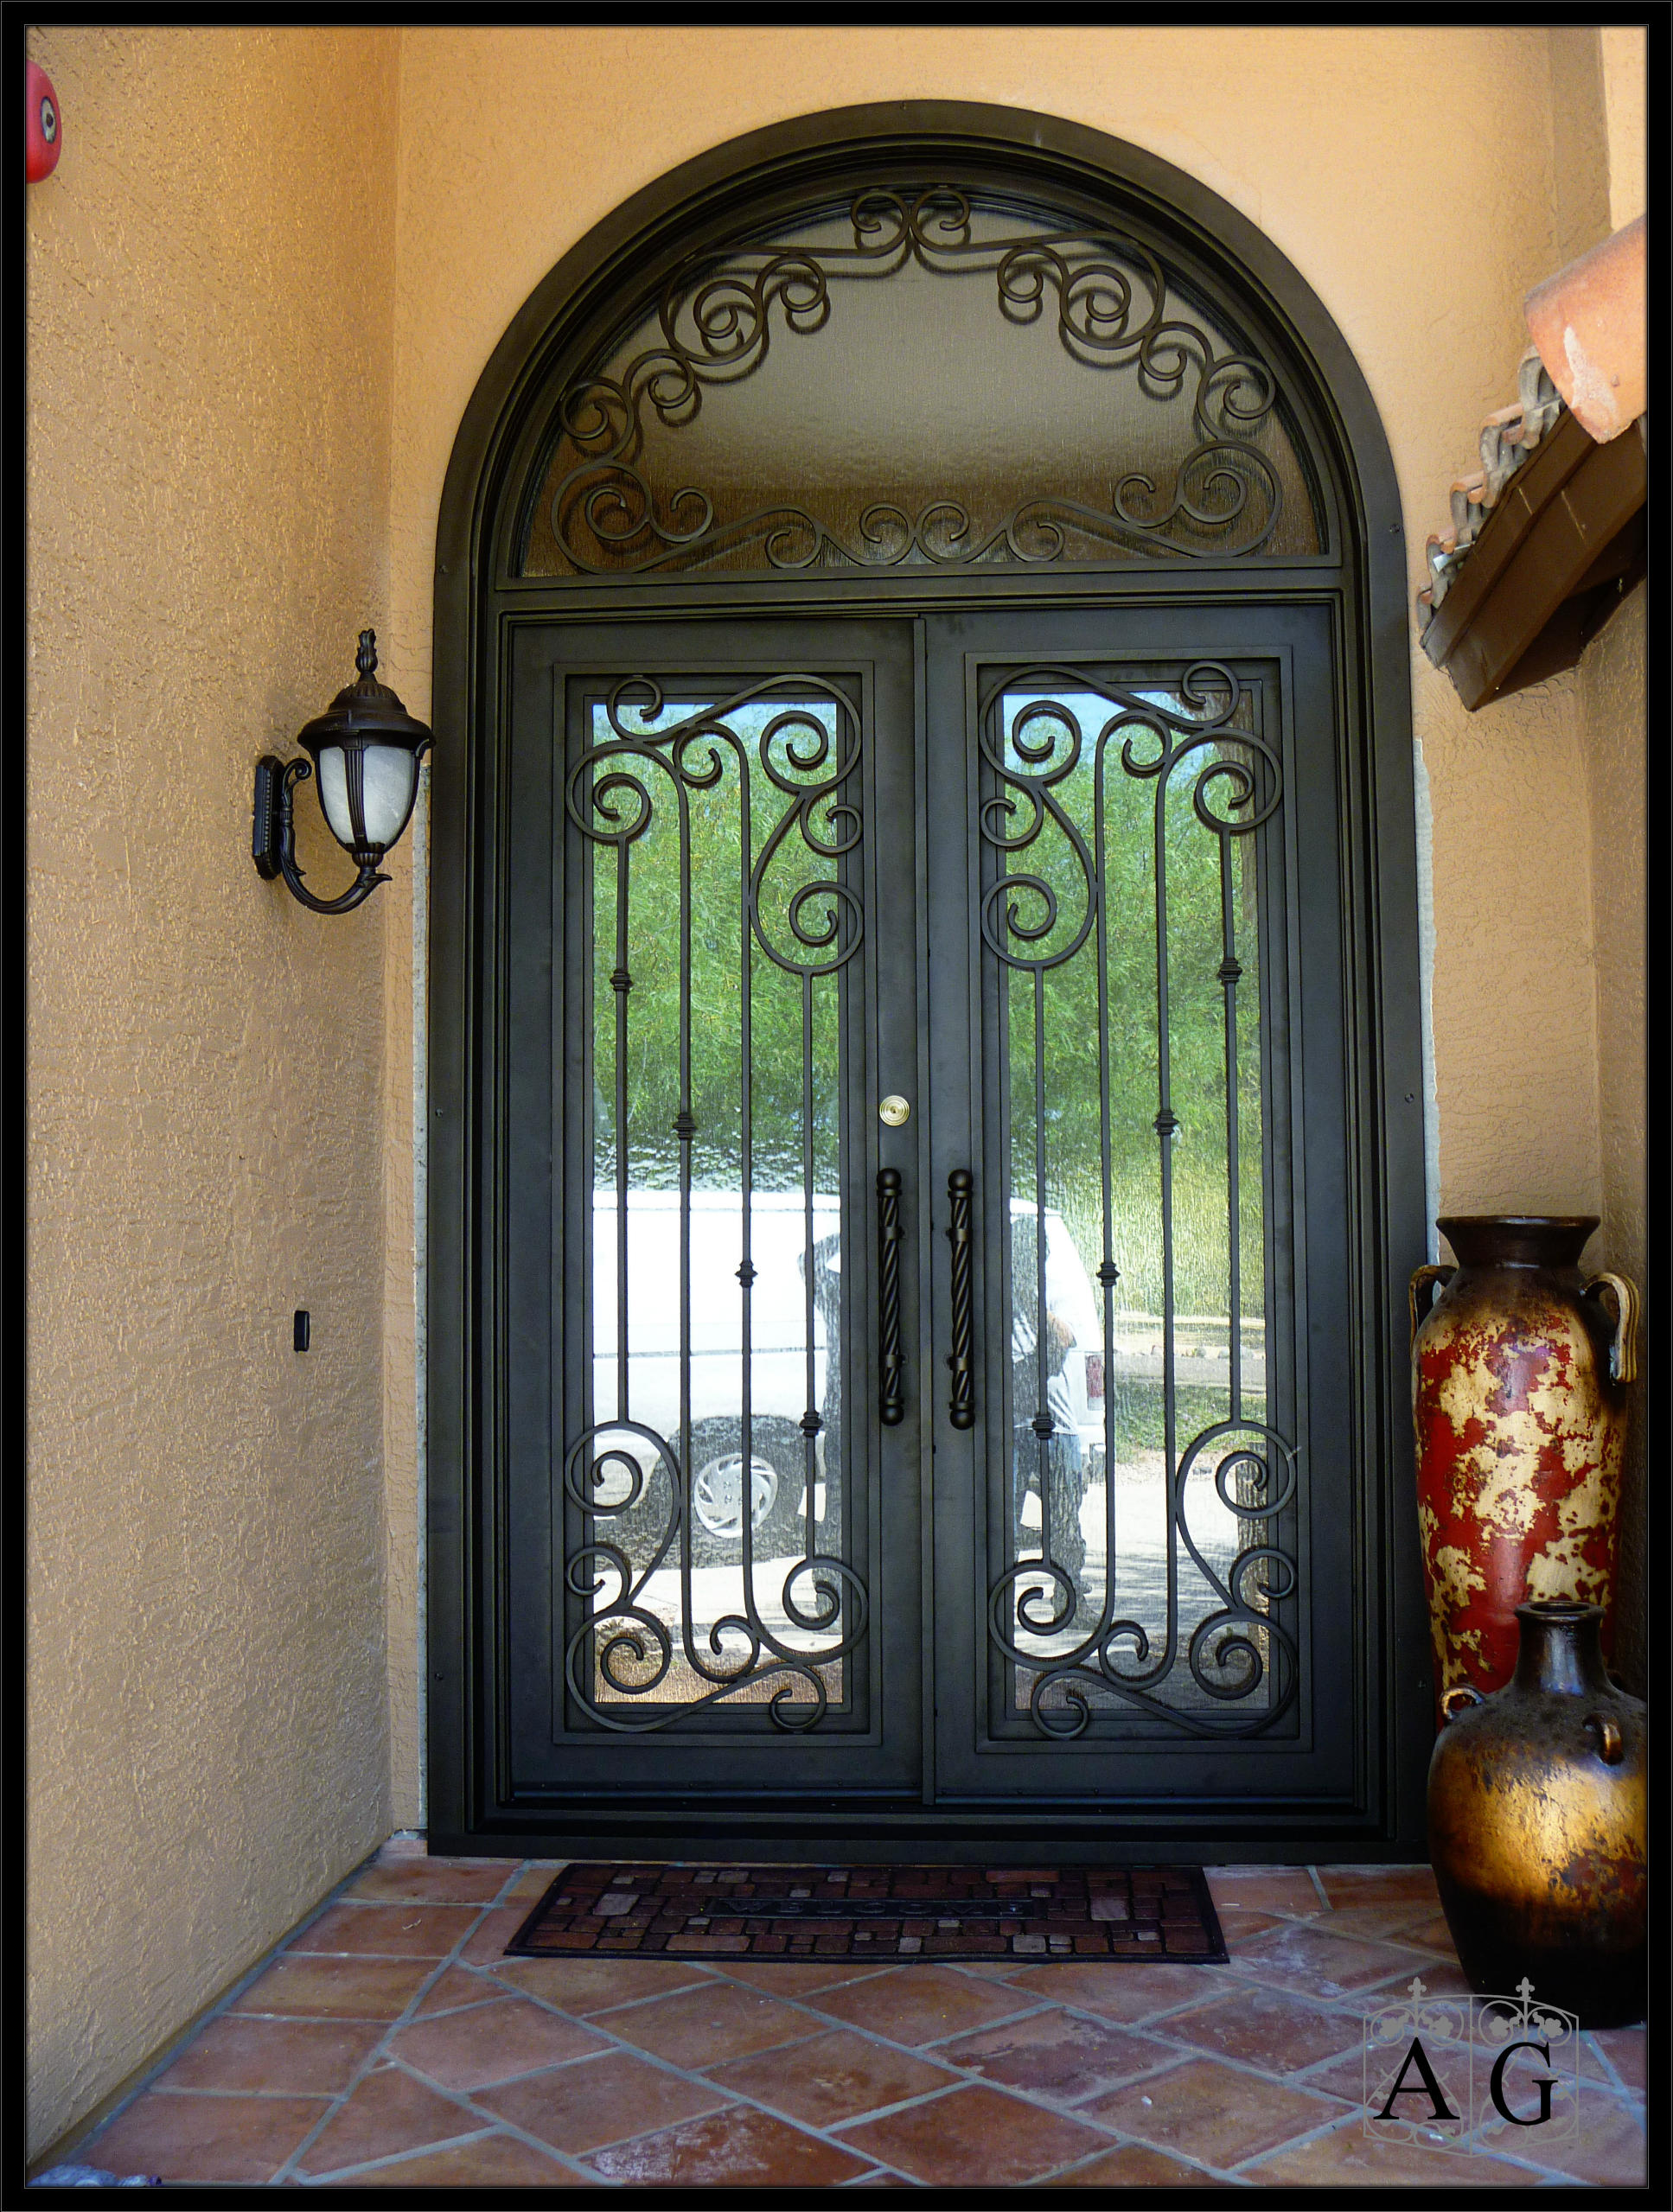 2559 #A0712B Types Of Custom Entry Doors Allied Gate Co. save image Custom Made Entry Doors 45471935